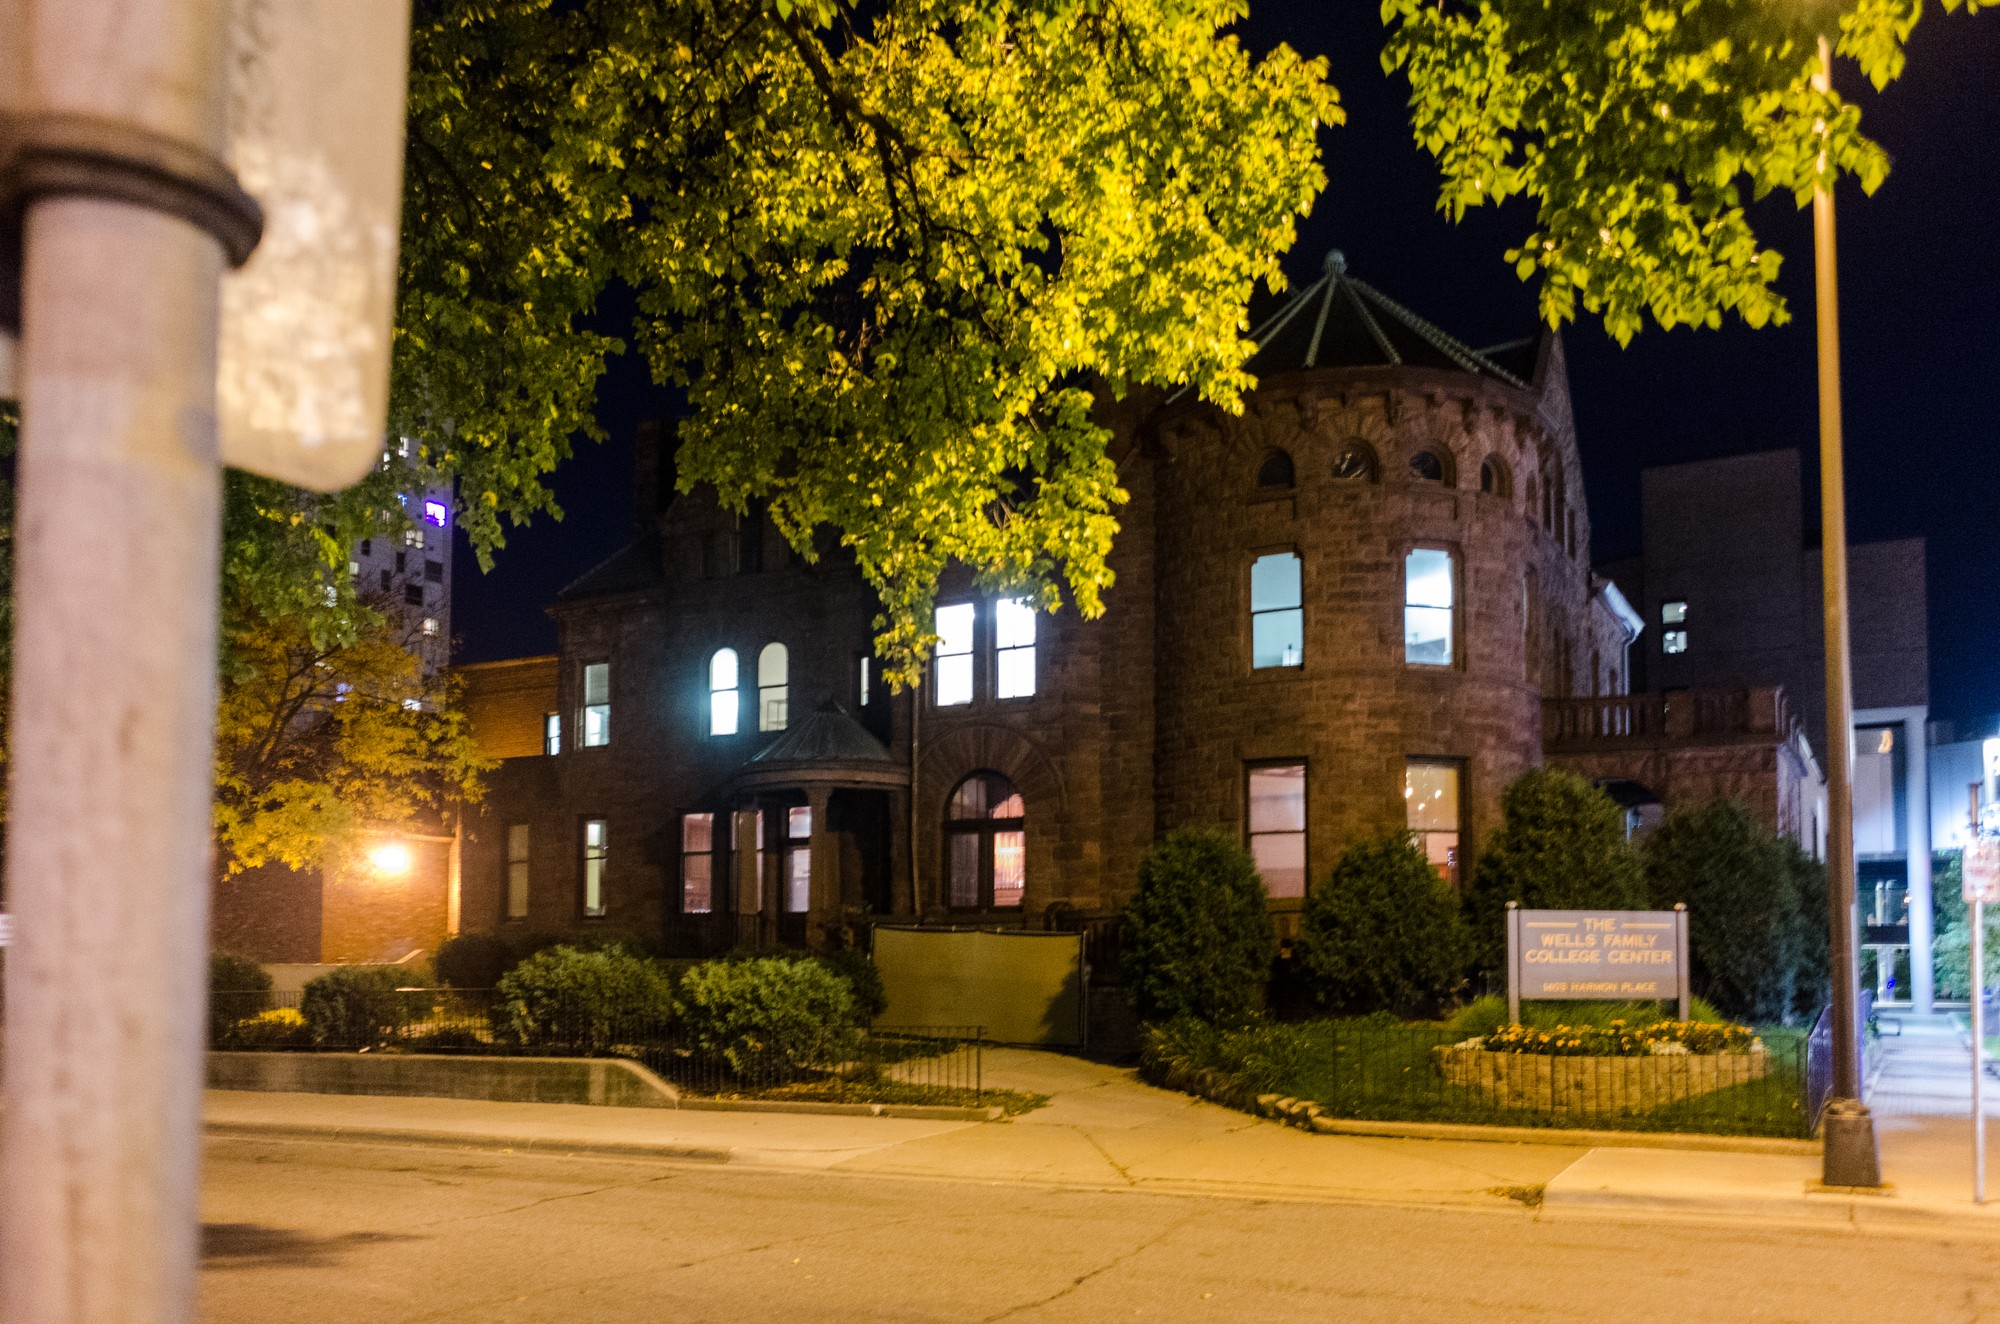 CCN investigates reports that Wells Family Center is haunted